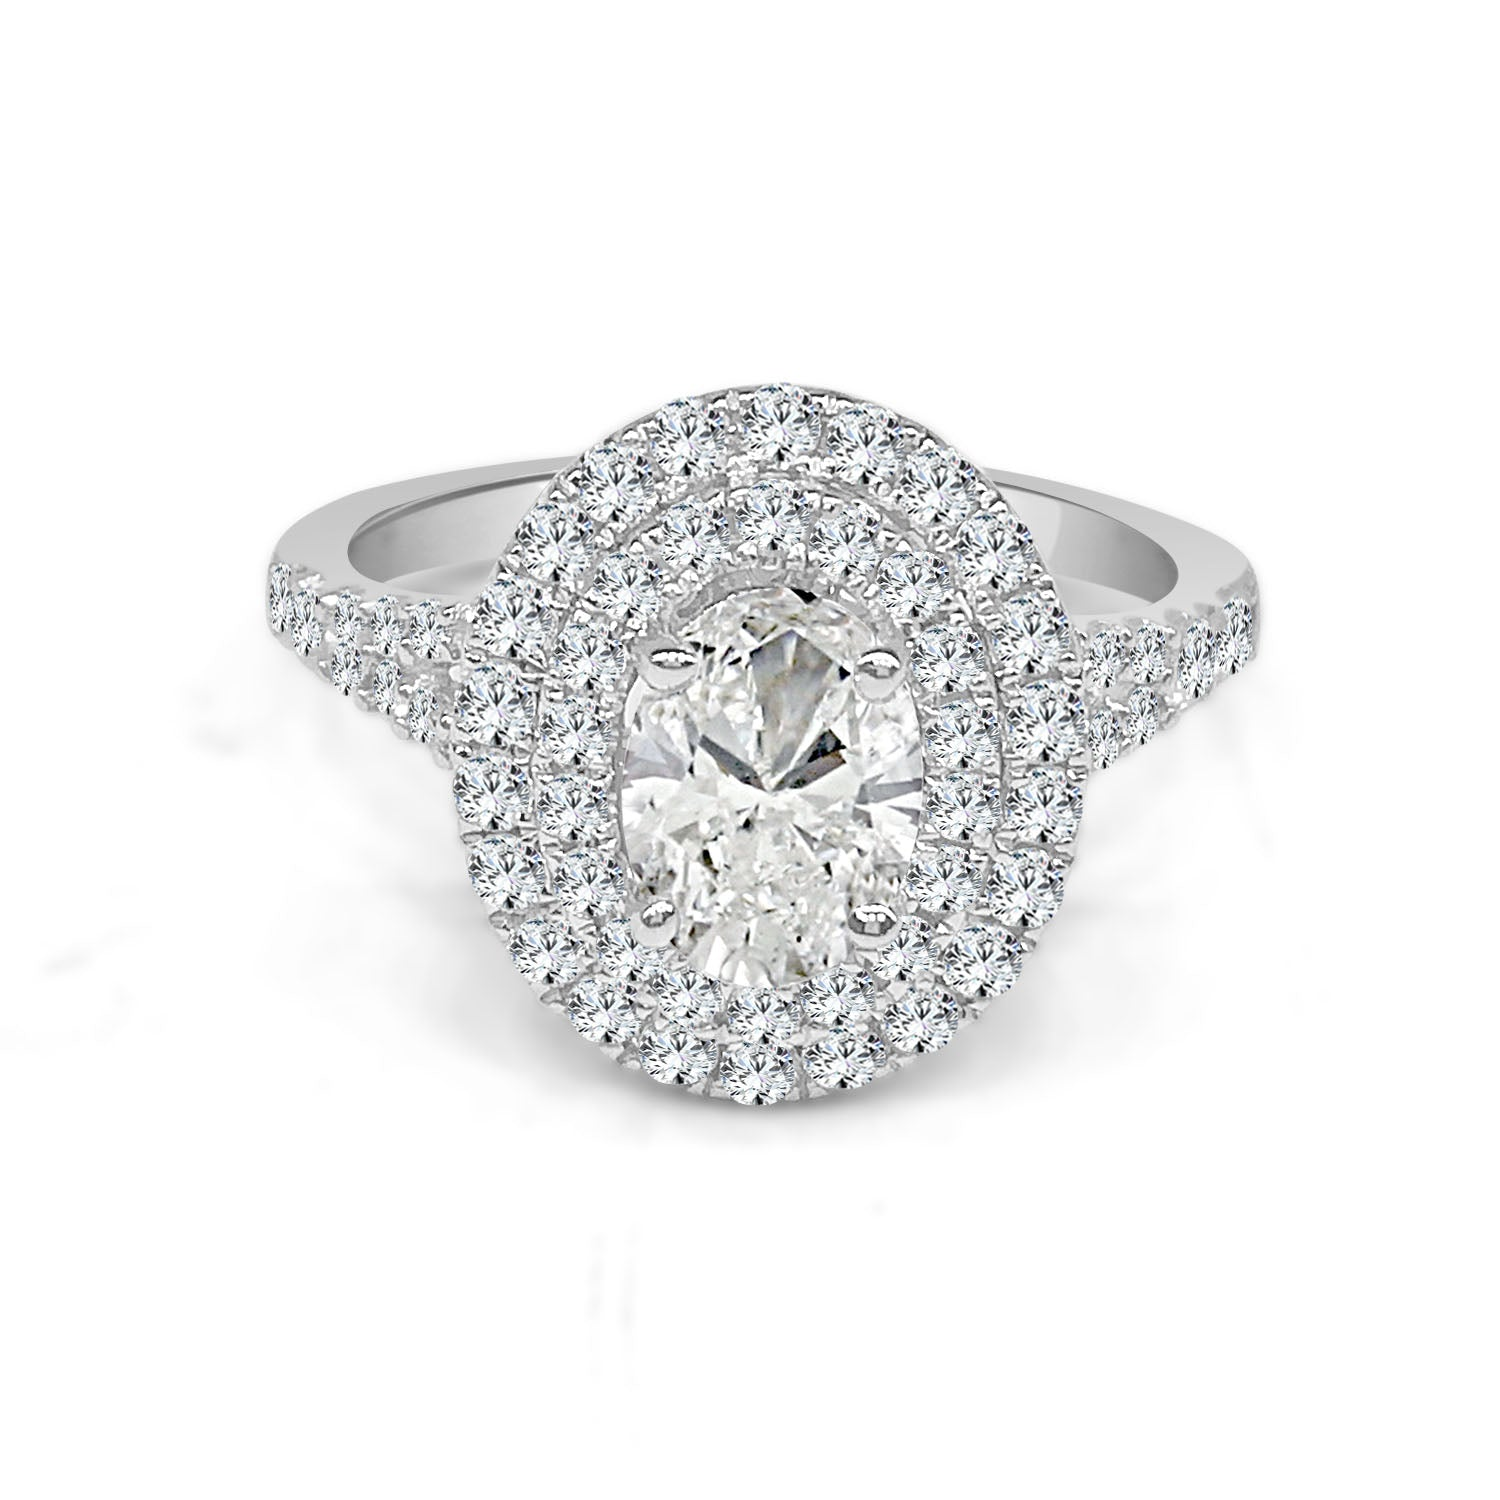 Oval Double 14 Karat White Gold 0.73 Carat Oval Diamond Halo Engagement Ring